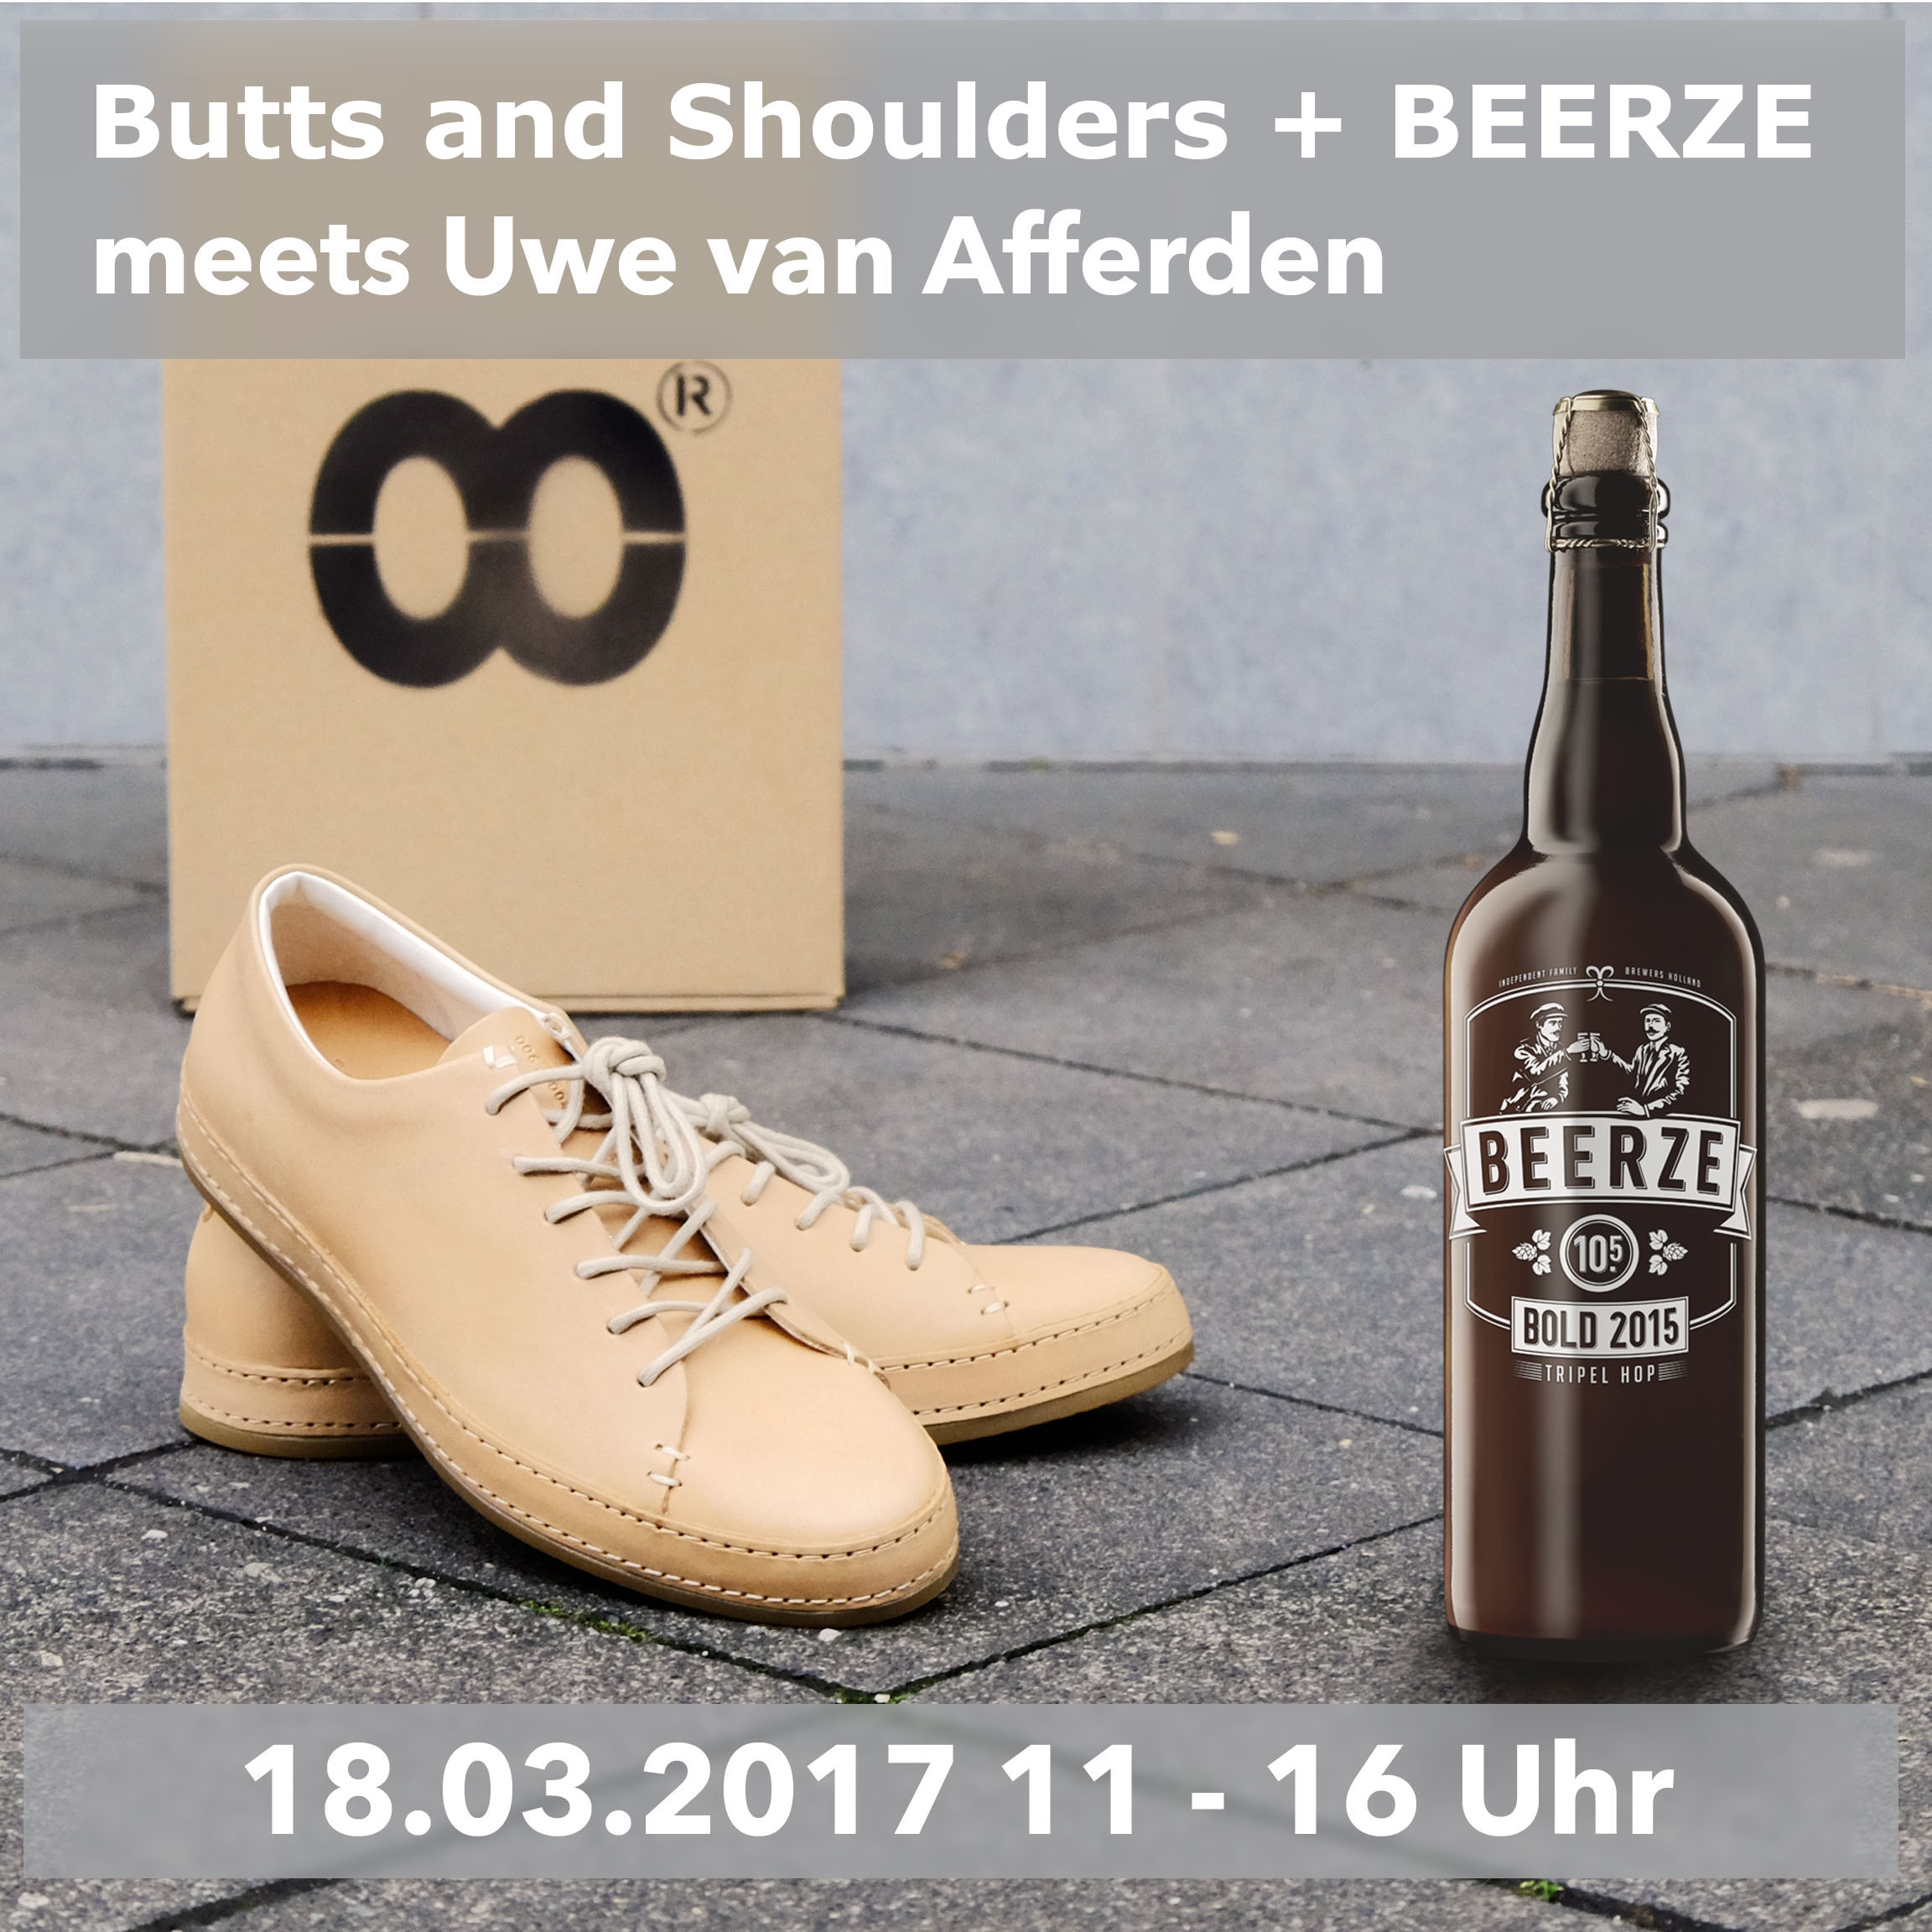 buttsandshoulders+beerze+uwevanafferden-event-sneaker